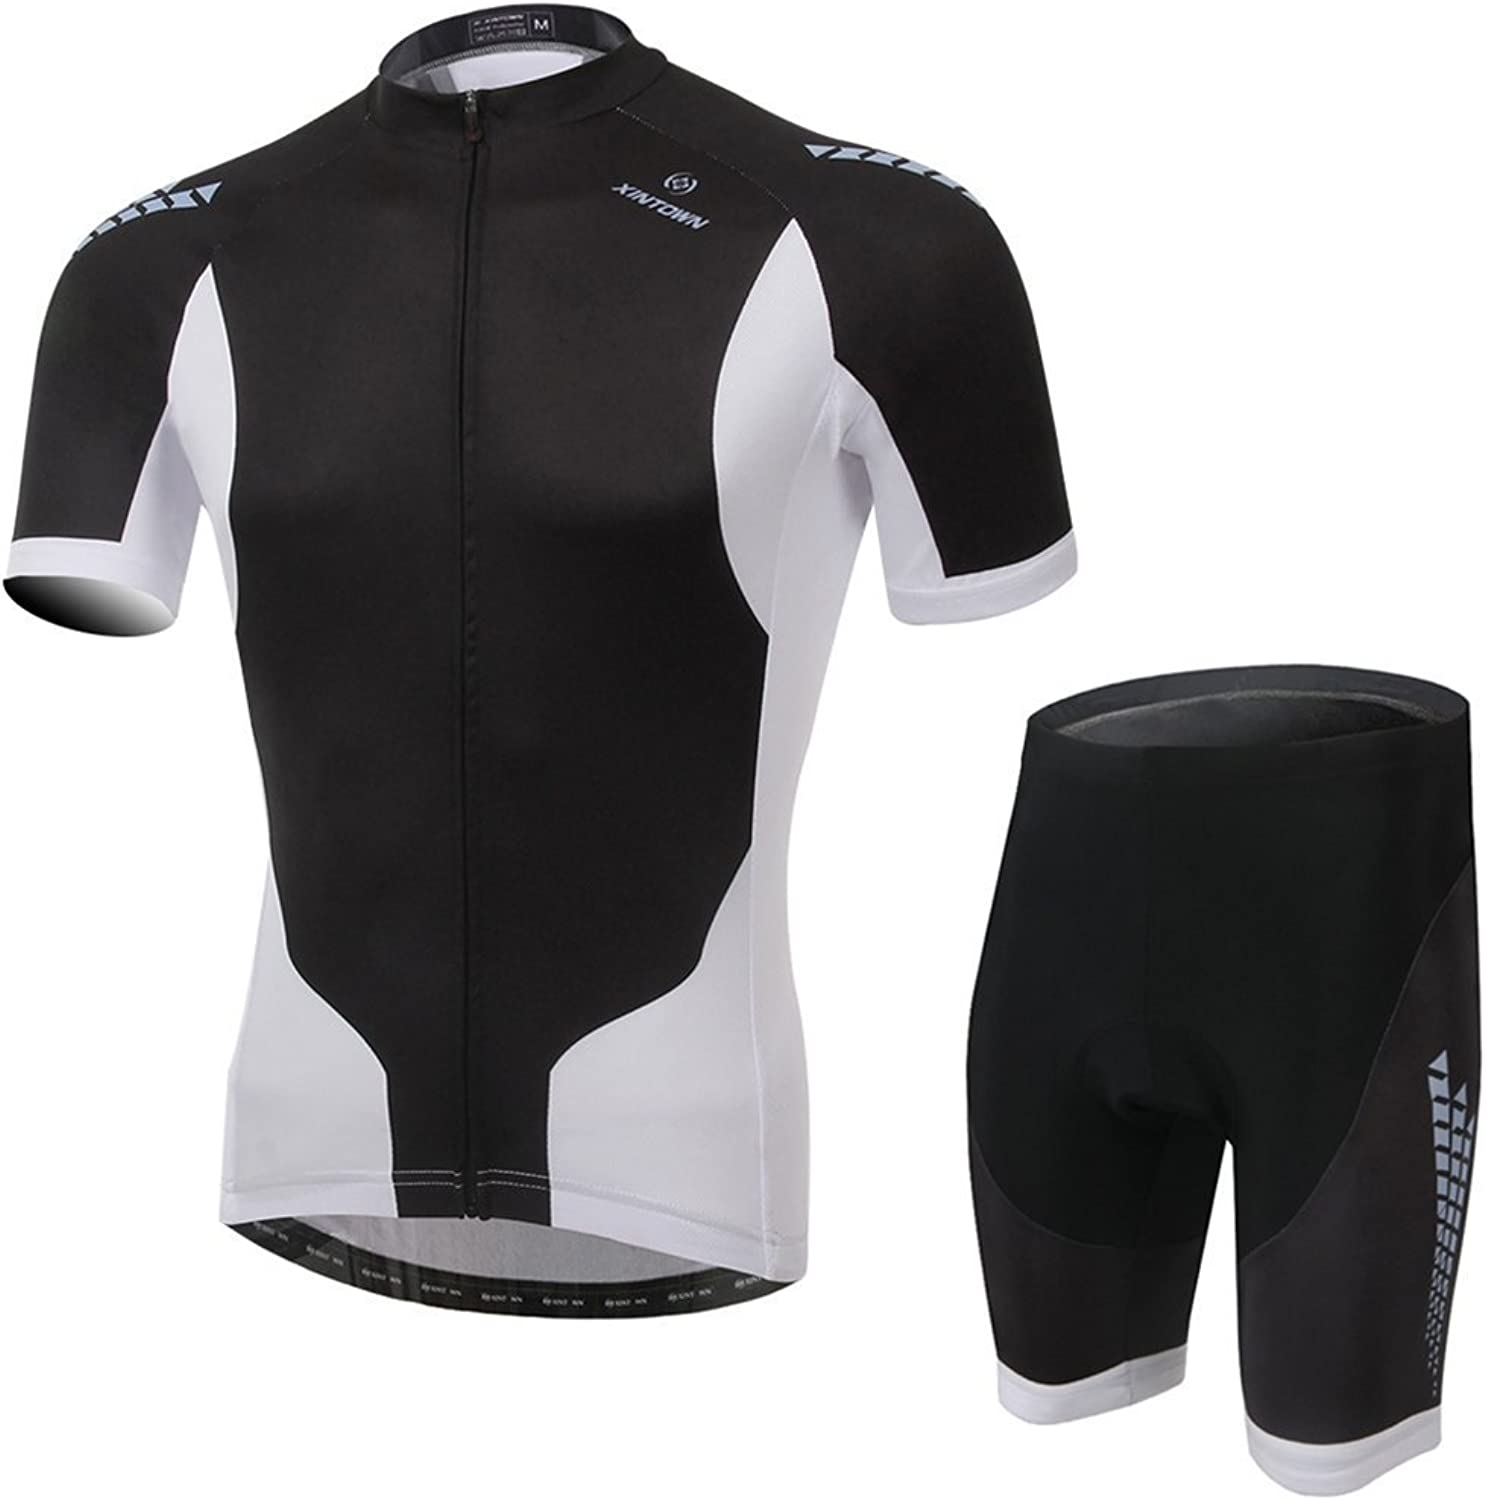 BESYL Unisex Black White Printed HighPerformance Mesh Cycling Clothing Kit, Cycling Jerseys Short Sleeve and Padded Shorts Suit for Bike, Biker, Bicycle, Riding